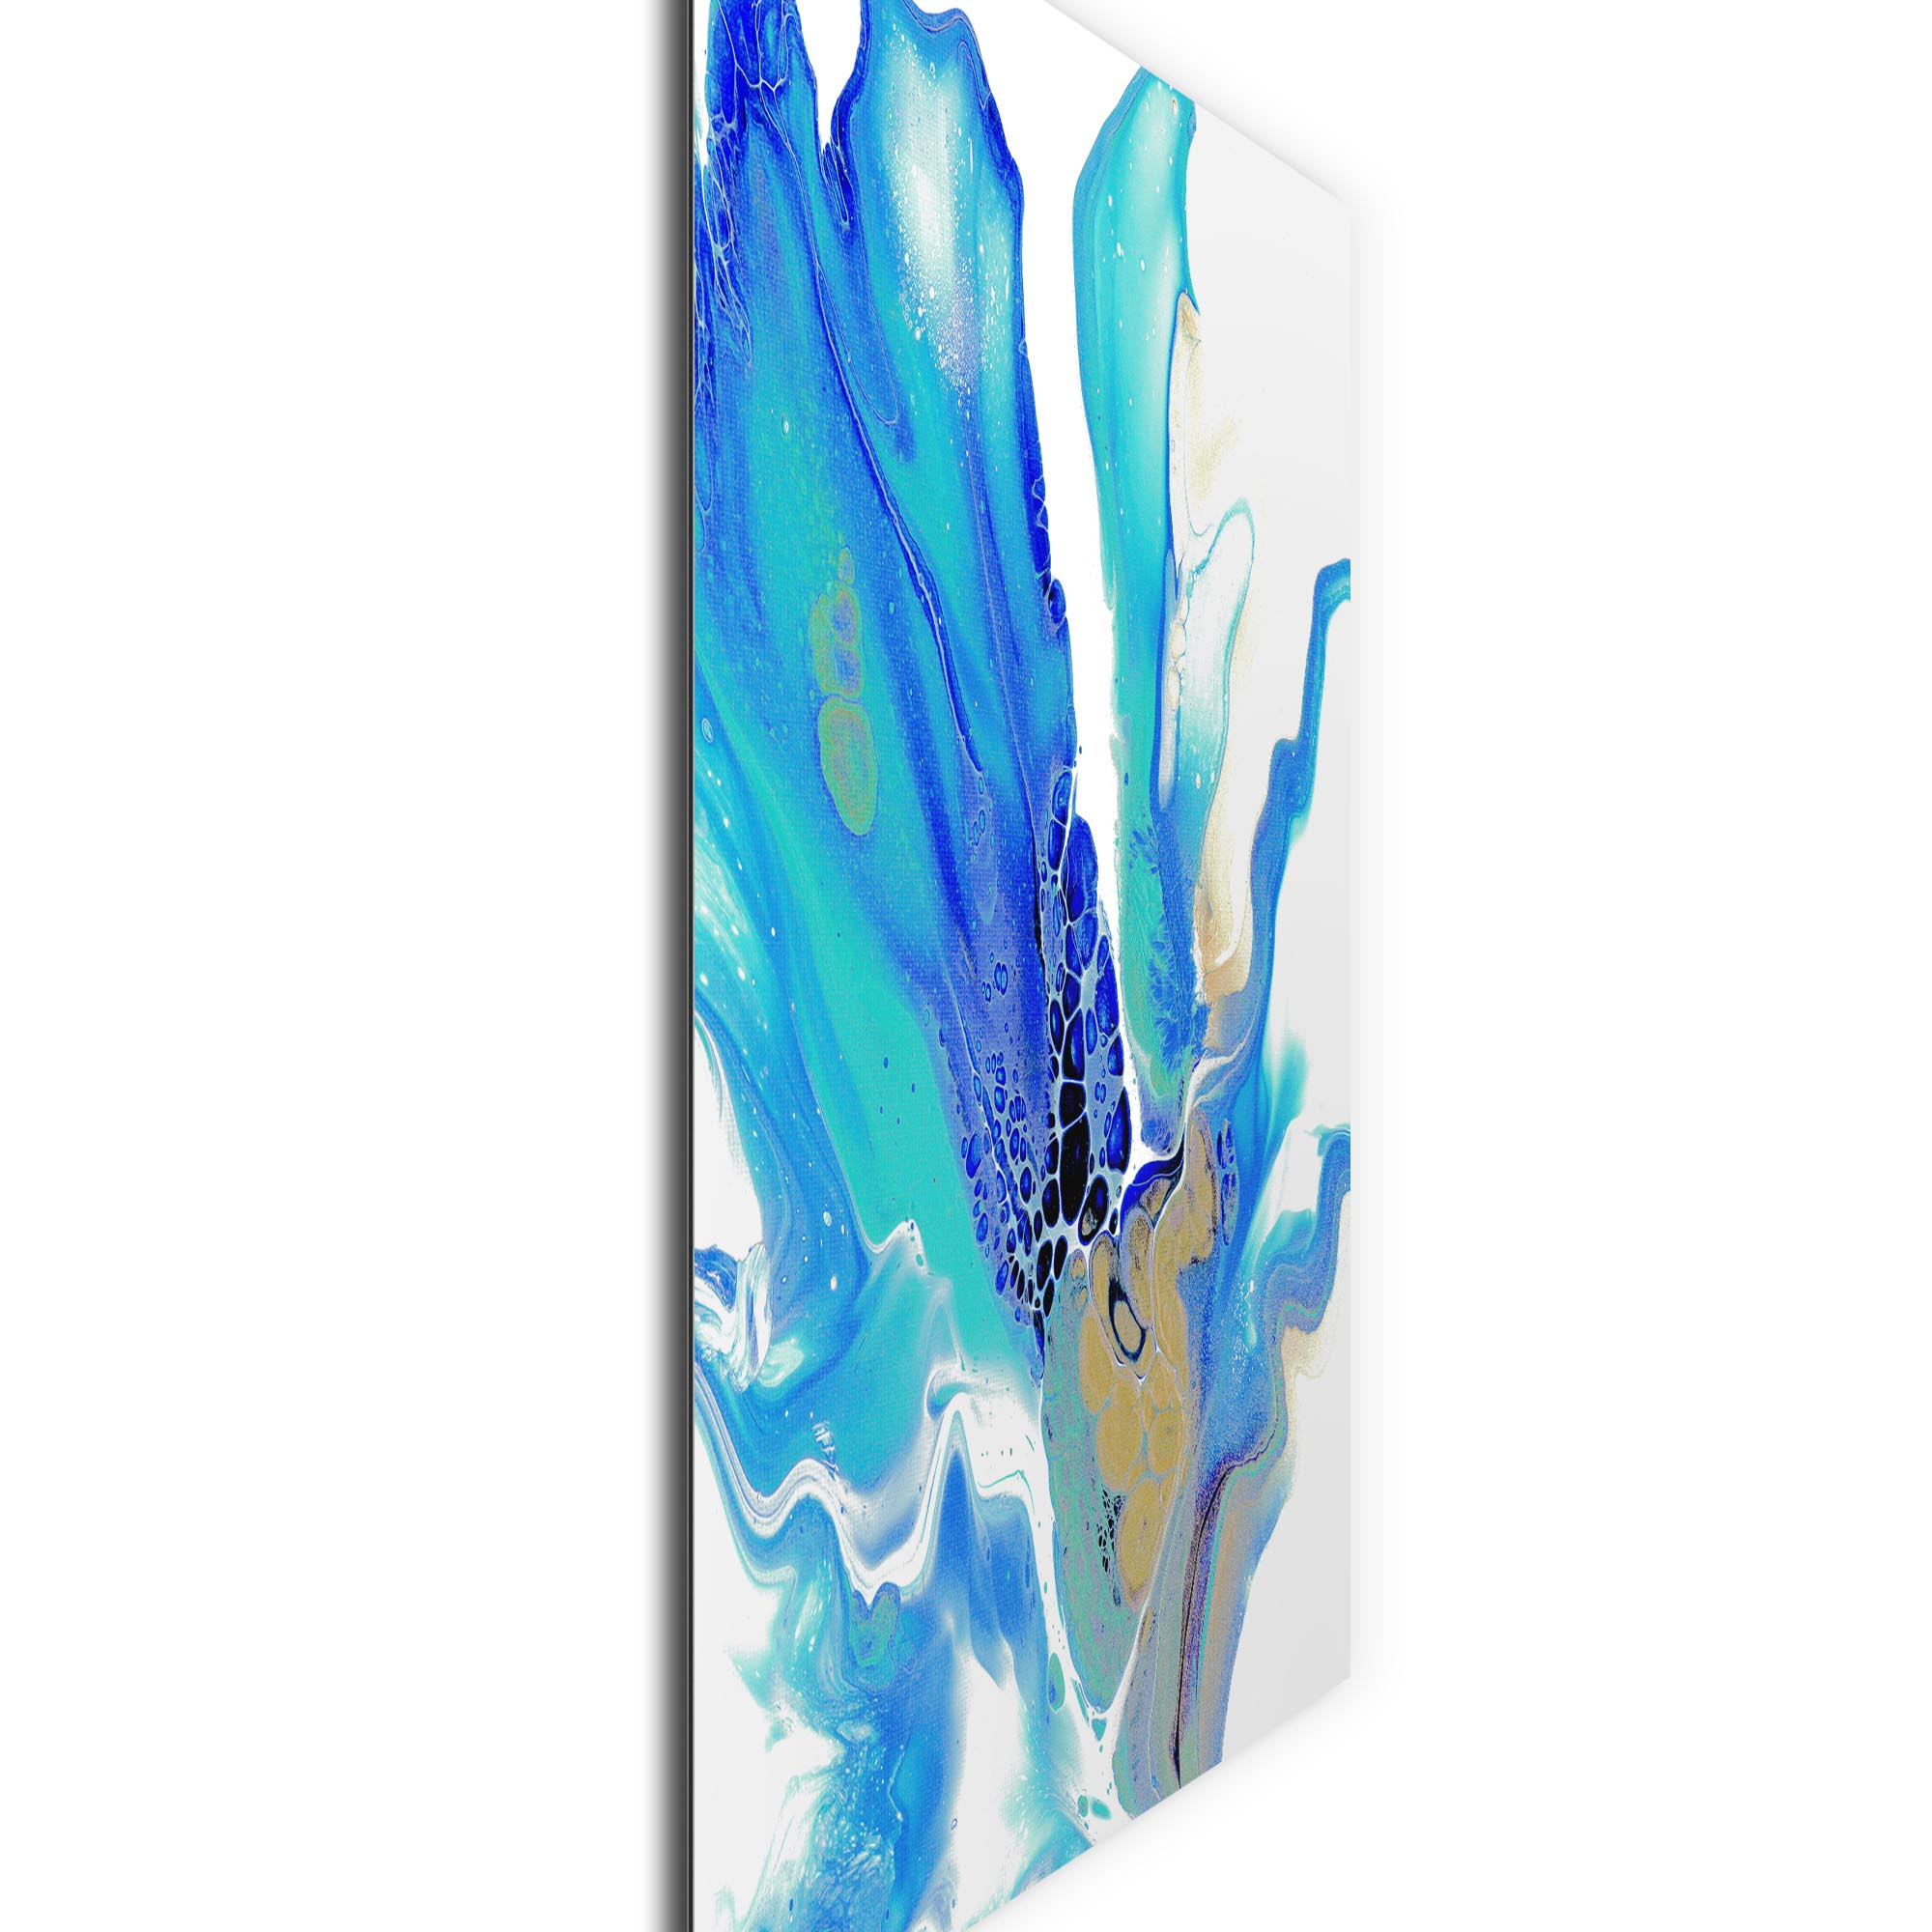 Arctic by Elana Reiter - Abstract Wall Art, Modern Home Decor (36in x 36in) - Image 2